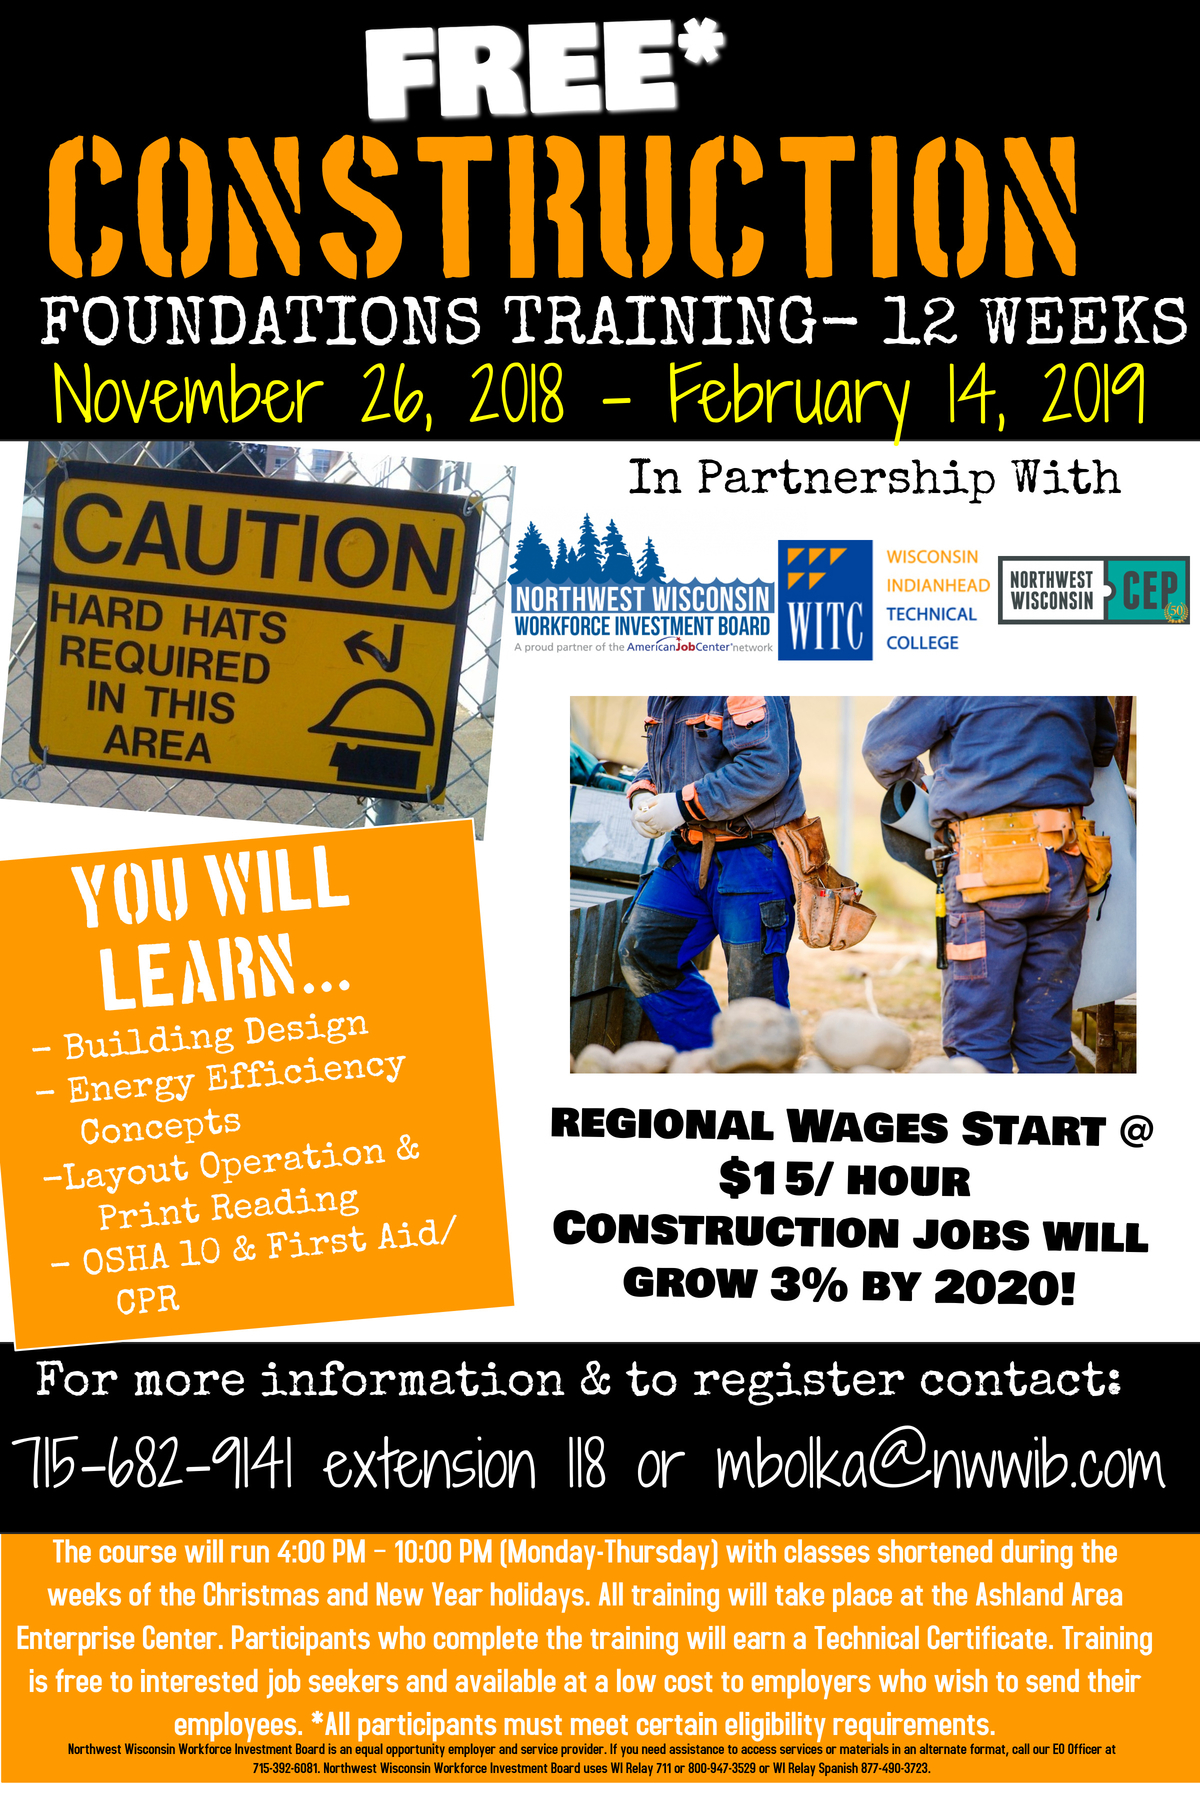 The course will run 4:00 PM – 10:00 PM (Monday-Thursday) with classes shortened during the weeks of the Christmas and New Year holidays. All training will take place at the Ashland Area Enterprise Center. Participants who complete the training will earn a Technical Certificate. Training is free to interested job seekers and available at a low cost to employers who wish to send their employees. *All participants must meet certain eligibility requirements. https://youtu.be/oppg11TQpb4